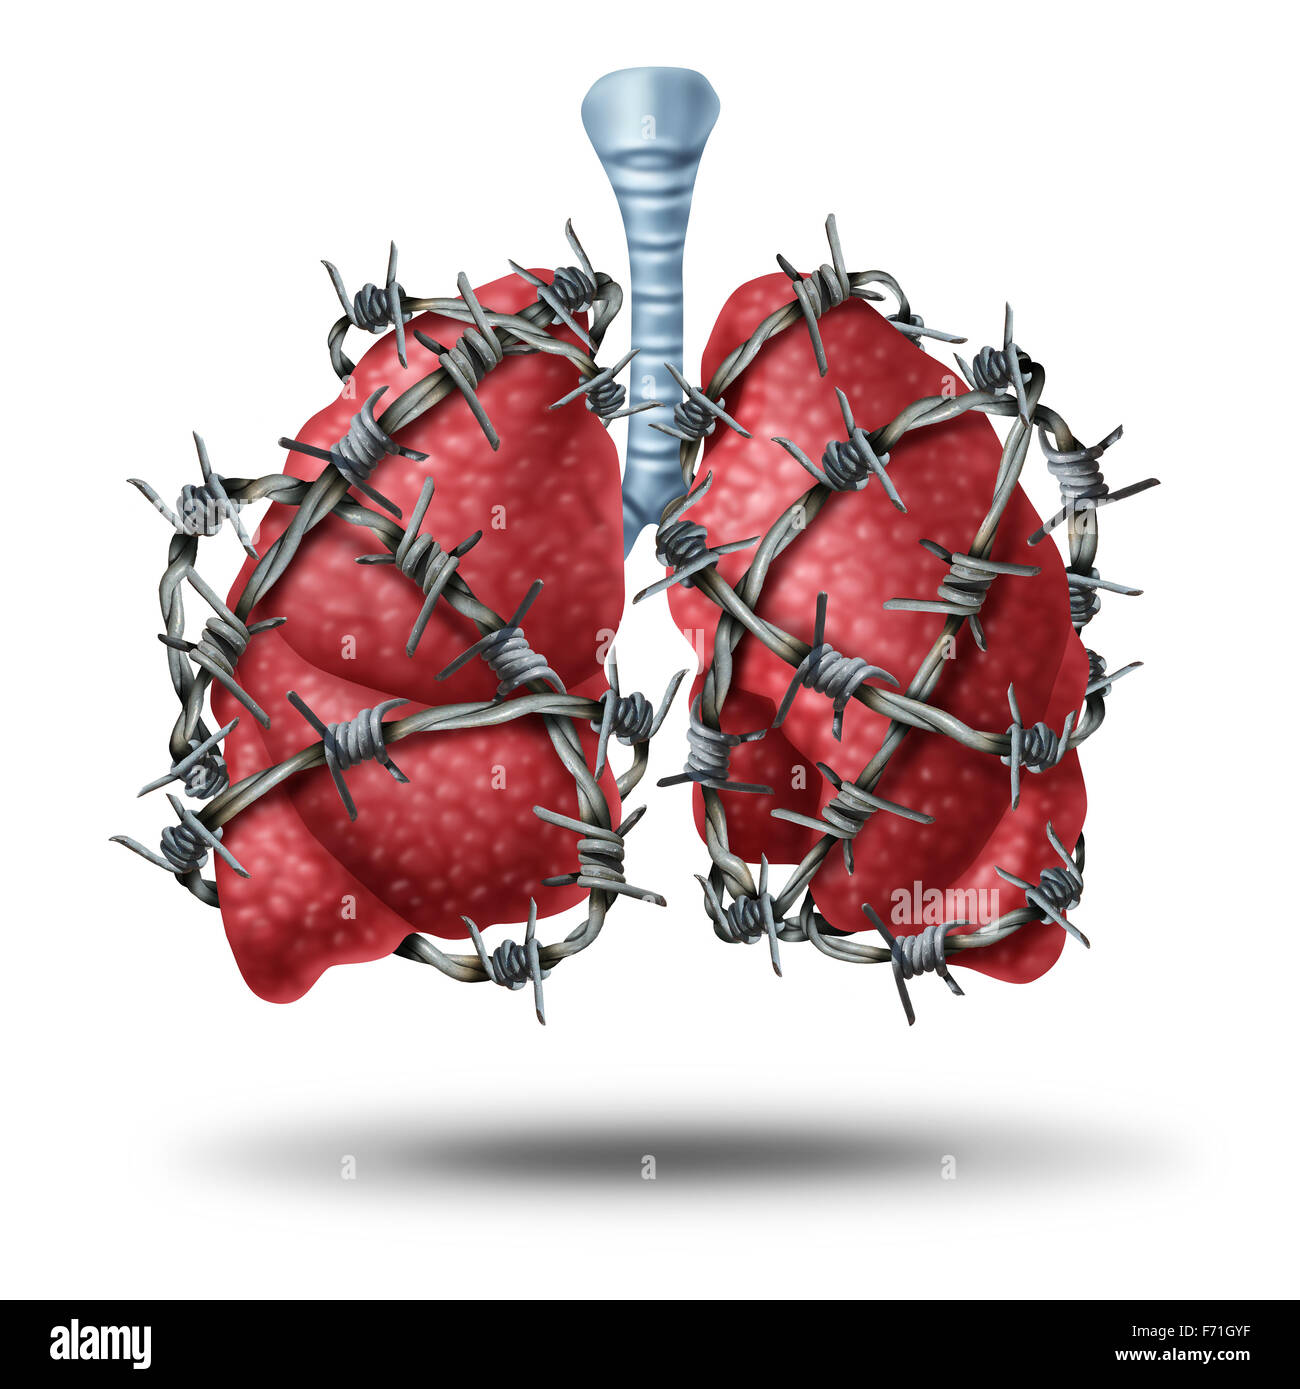 Human Anatomy Of The Lungs Stock Photos Human Anatomy Of The Lungs